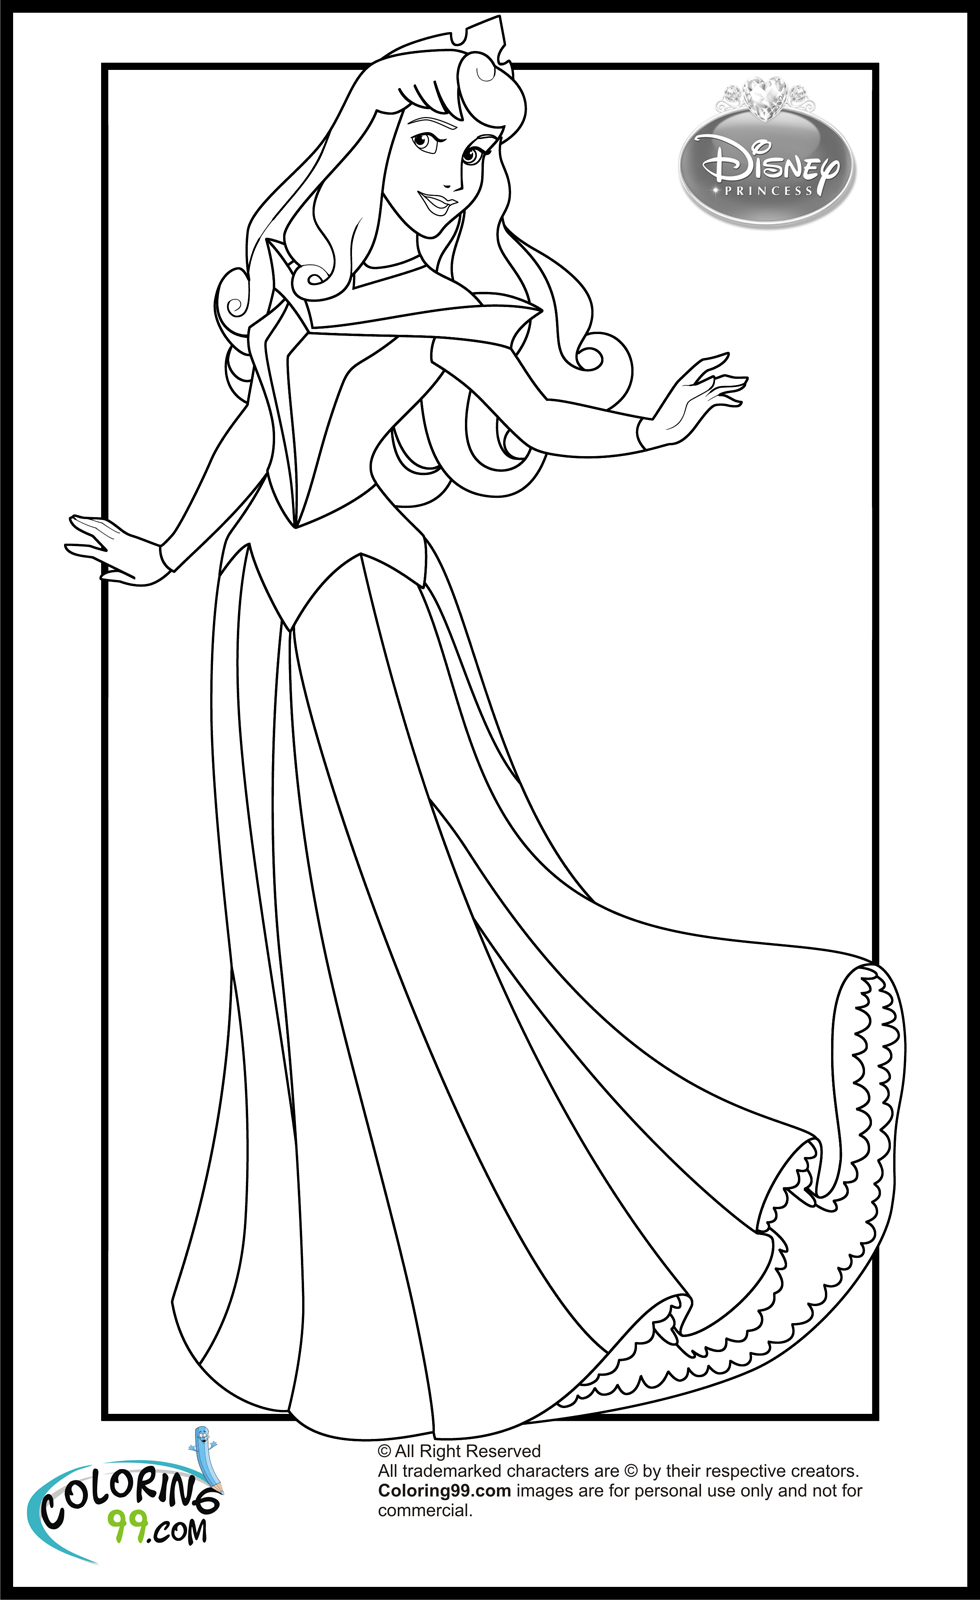 disney color pages transmissionpress disney princess coloring pages color pages disney